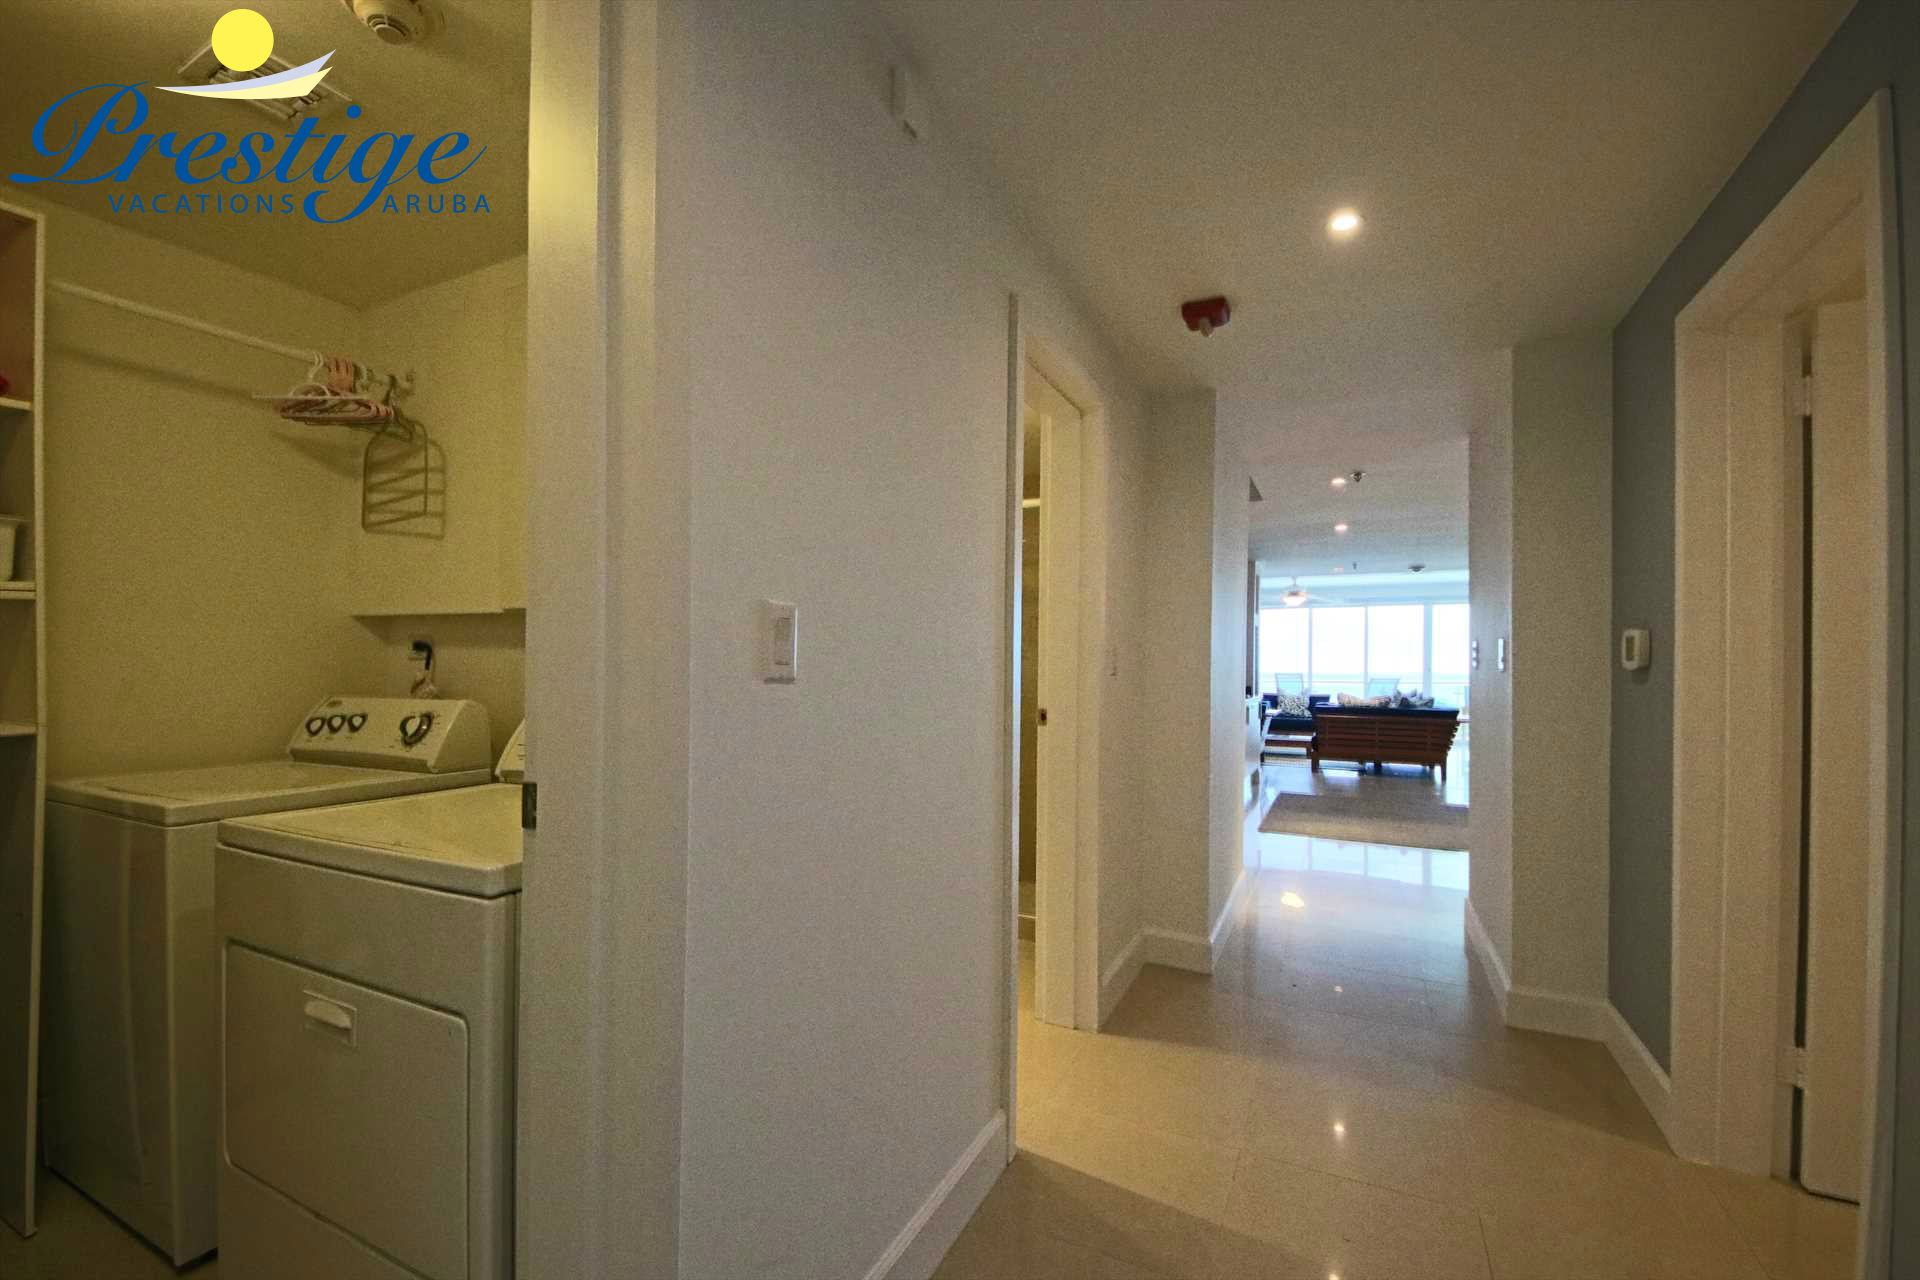 The entrance corridor with laundry room with washer/dryer plus access to the fourth bedroom and bathroom